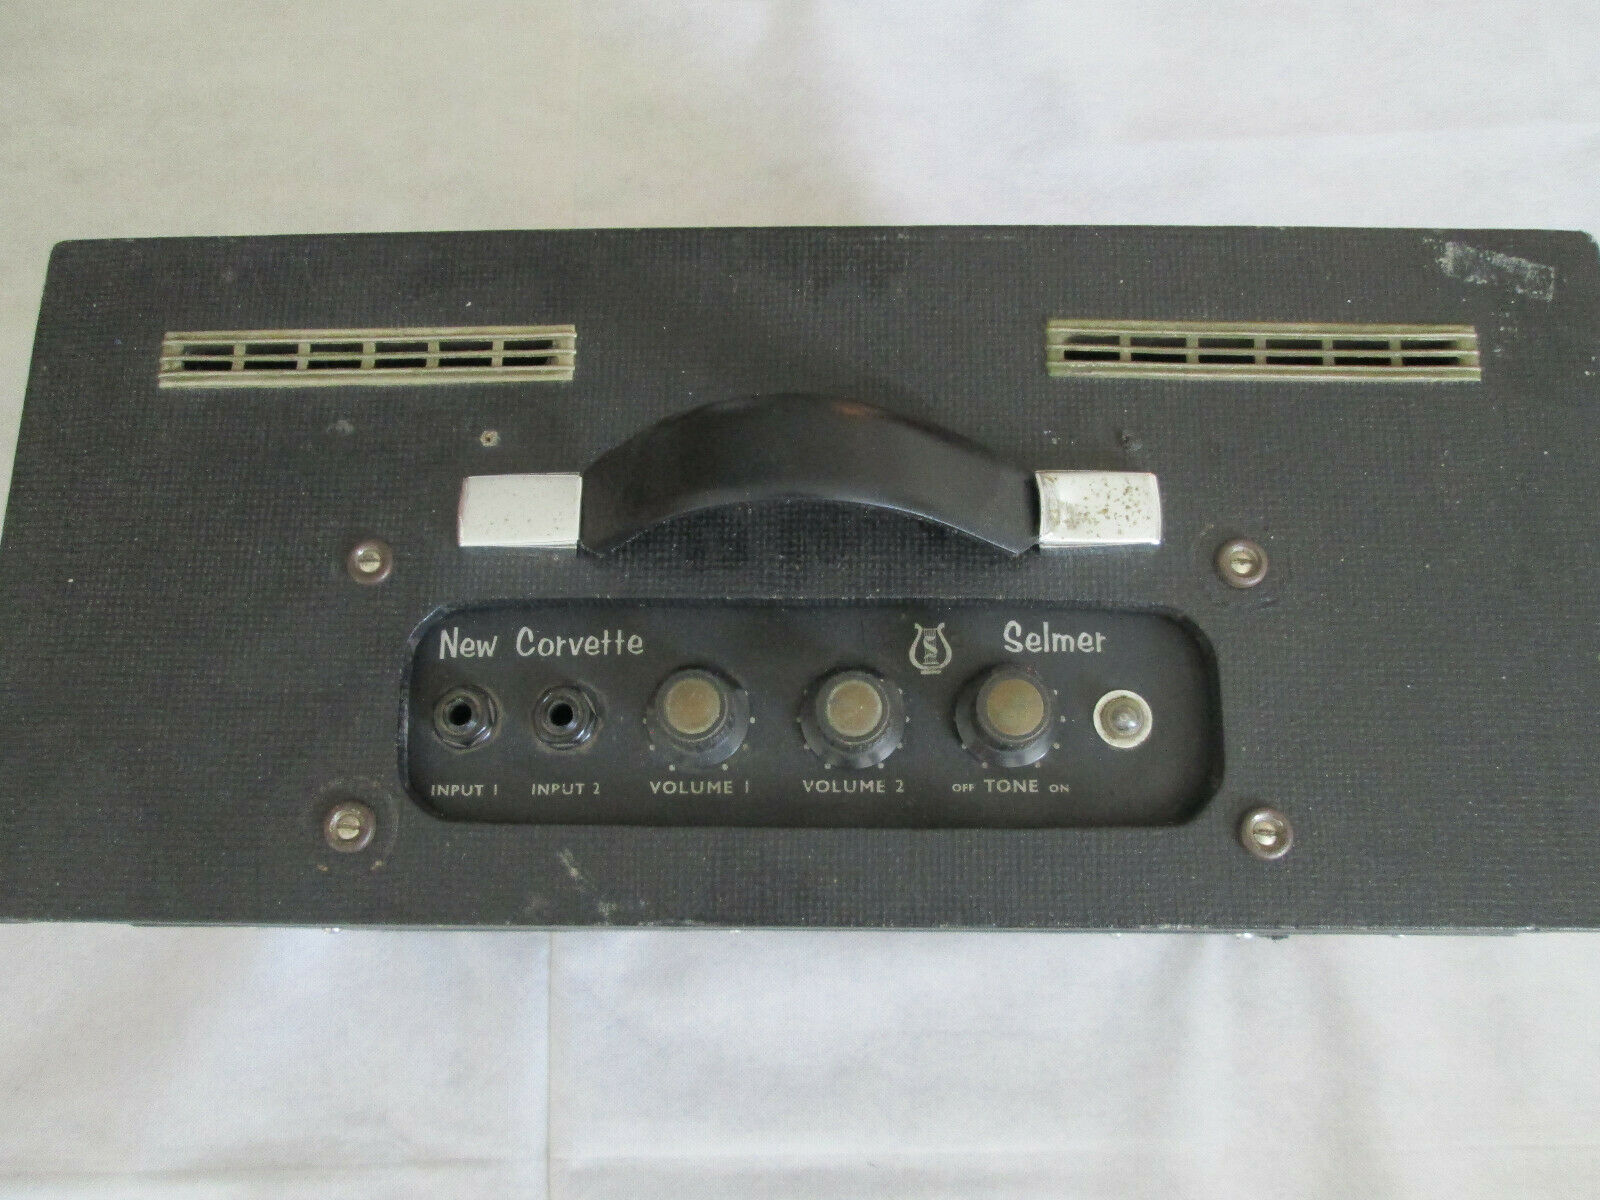 Selmer Corvette 6 valve amplifier - early to mid sixties - fully working.